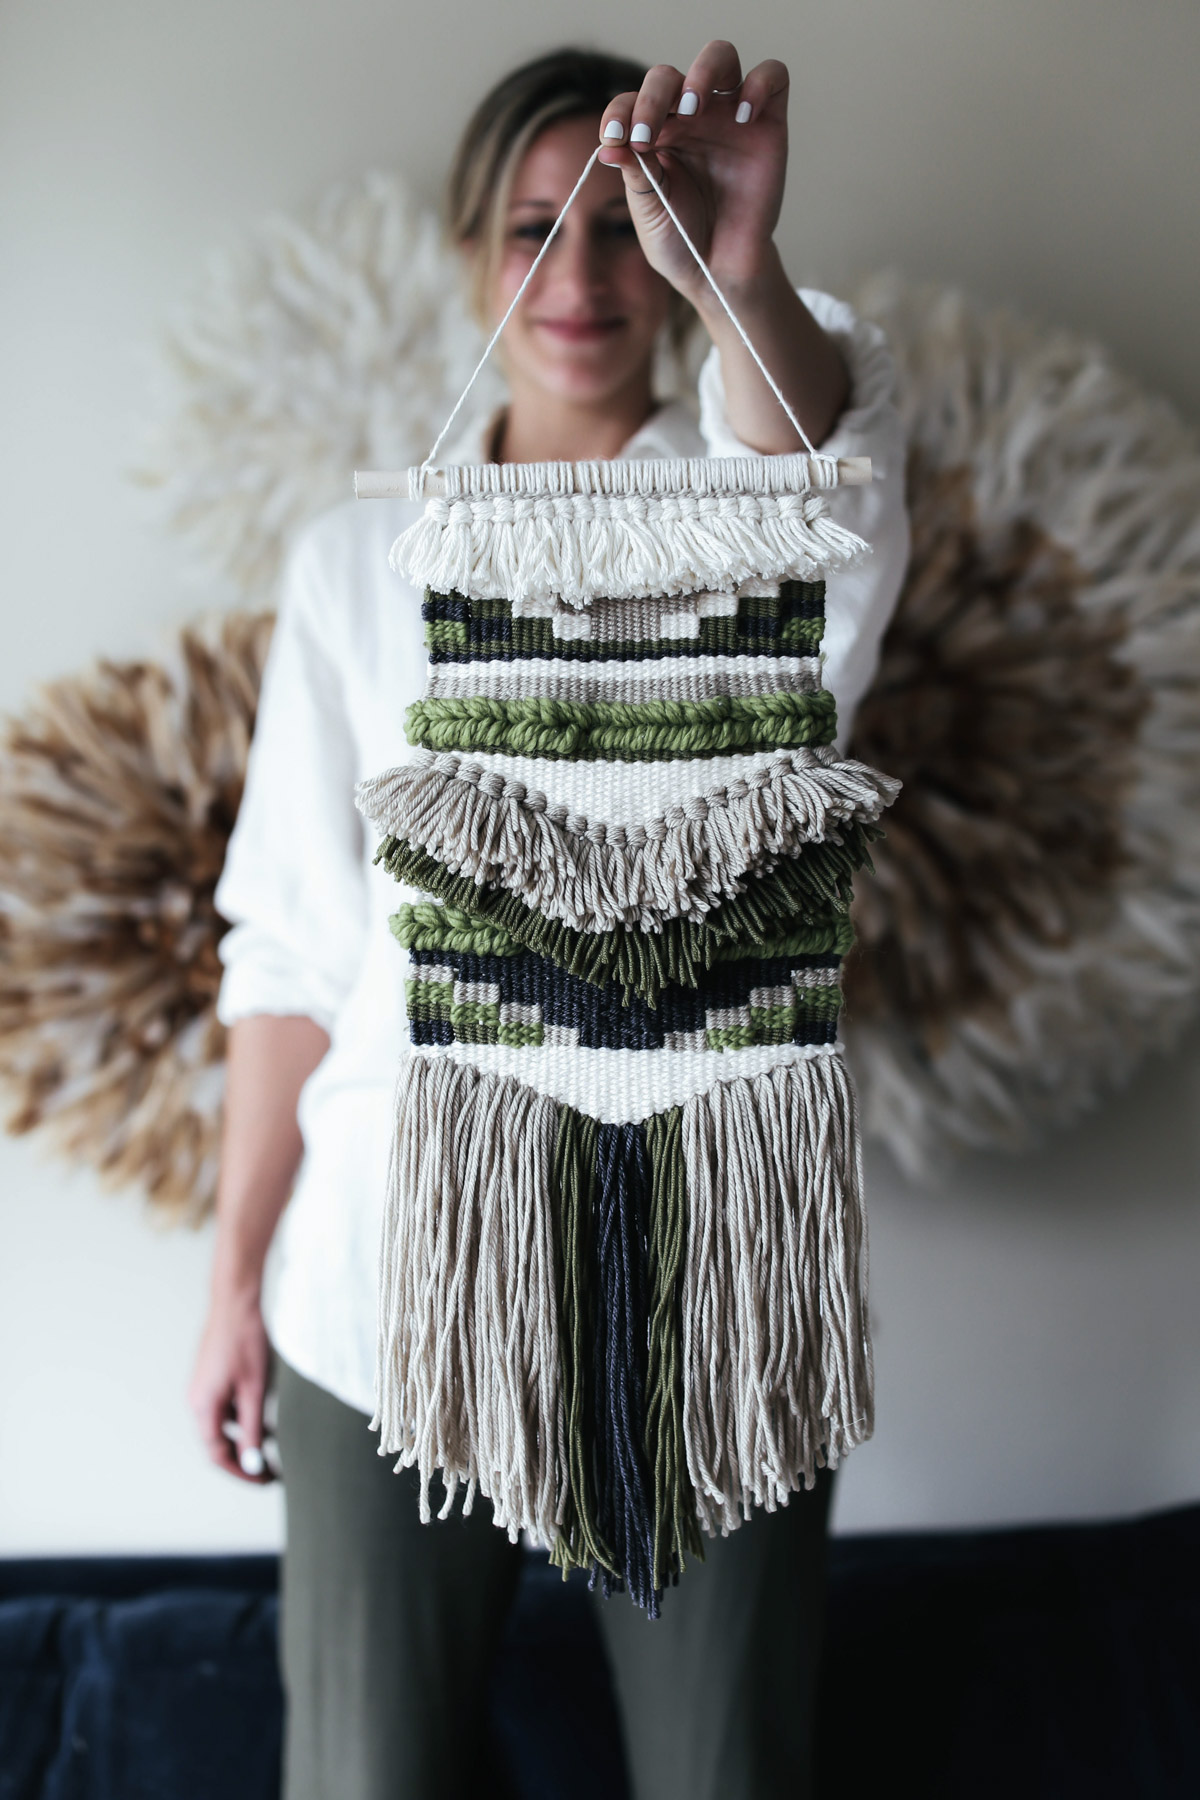 How I Learned a New Skill: Weaving